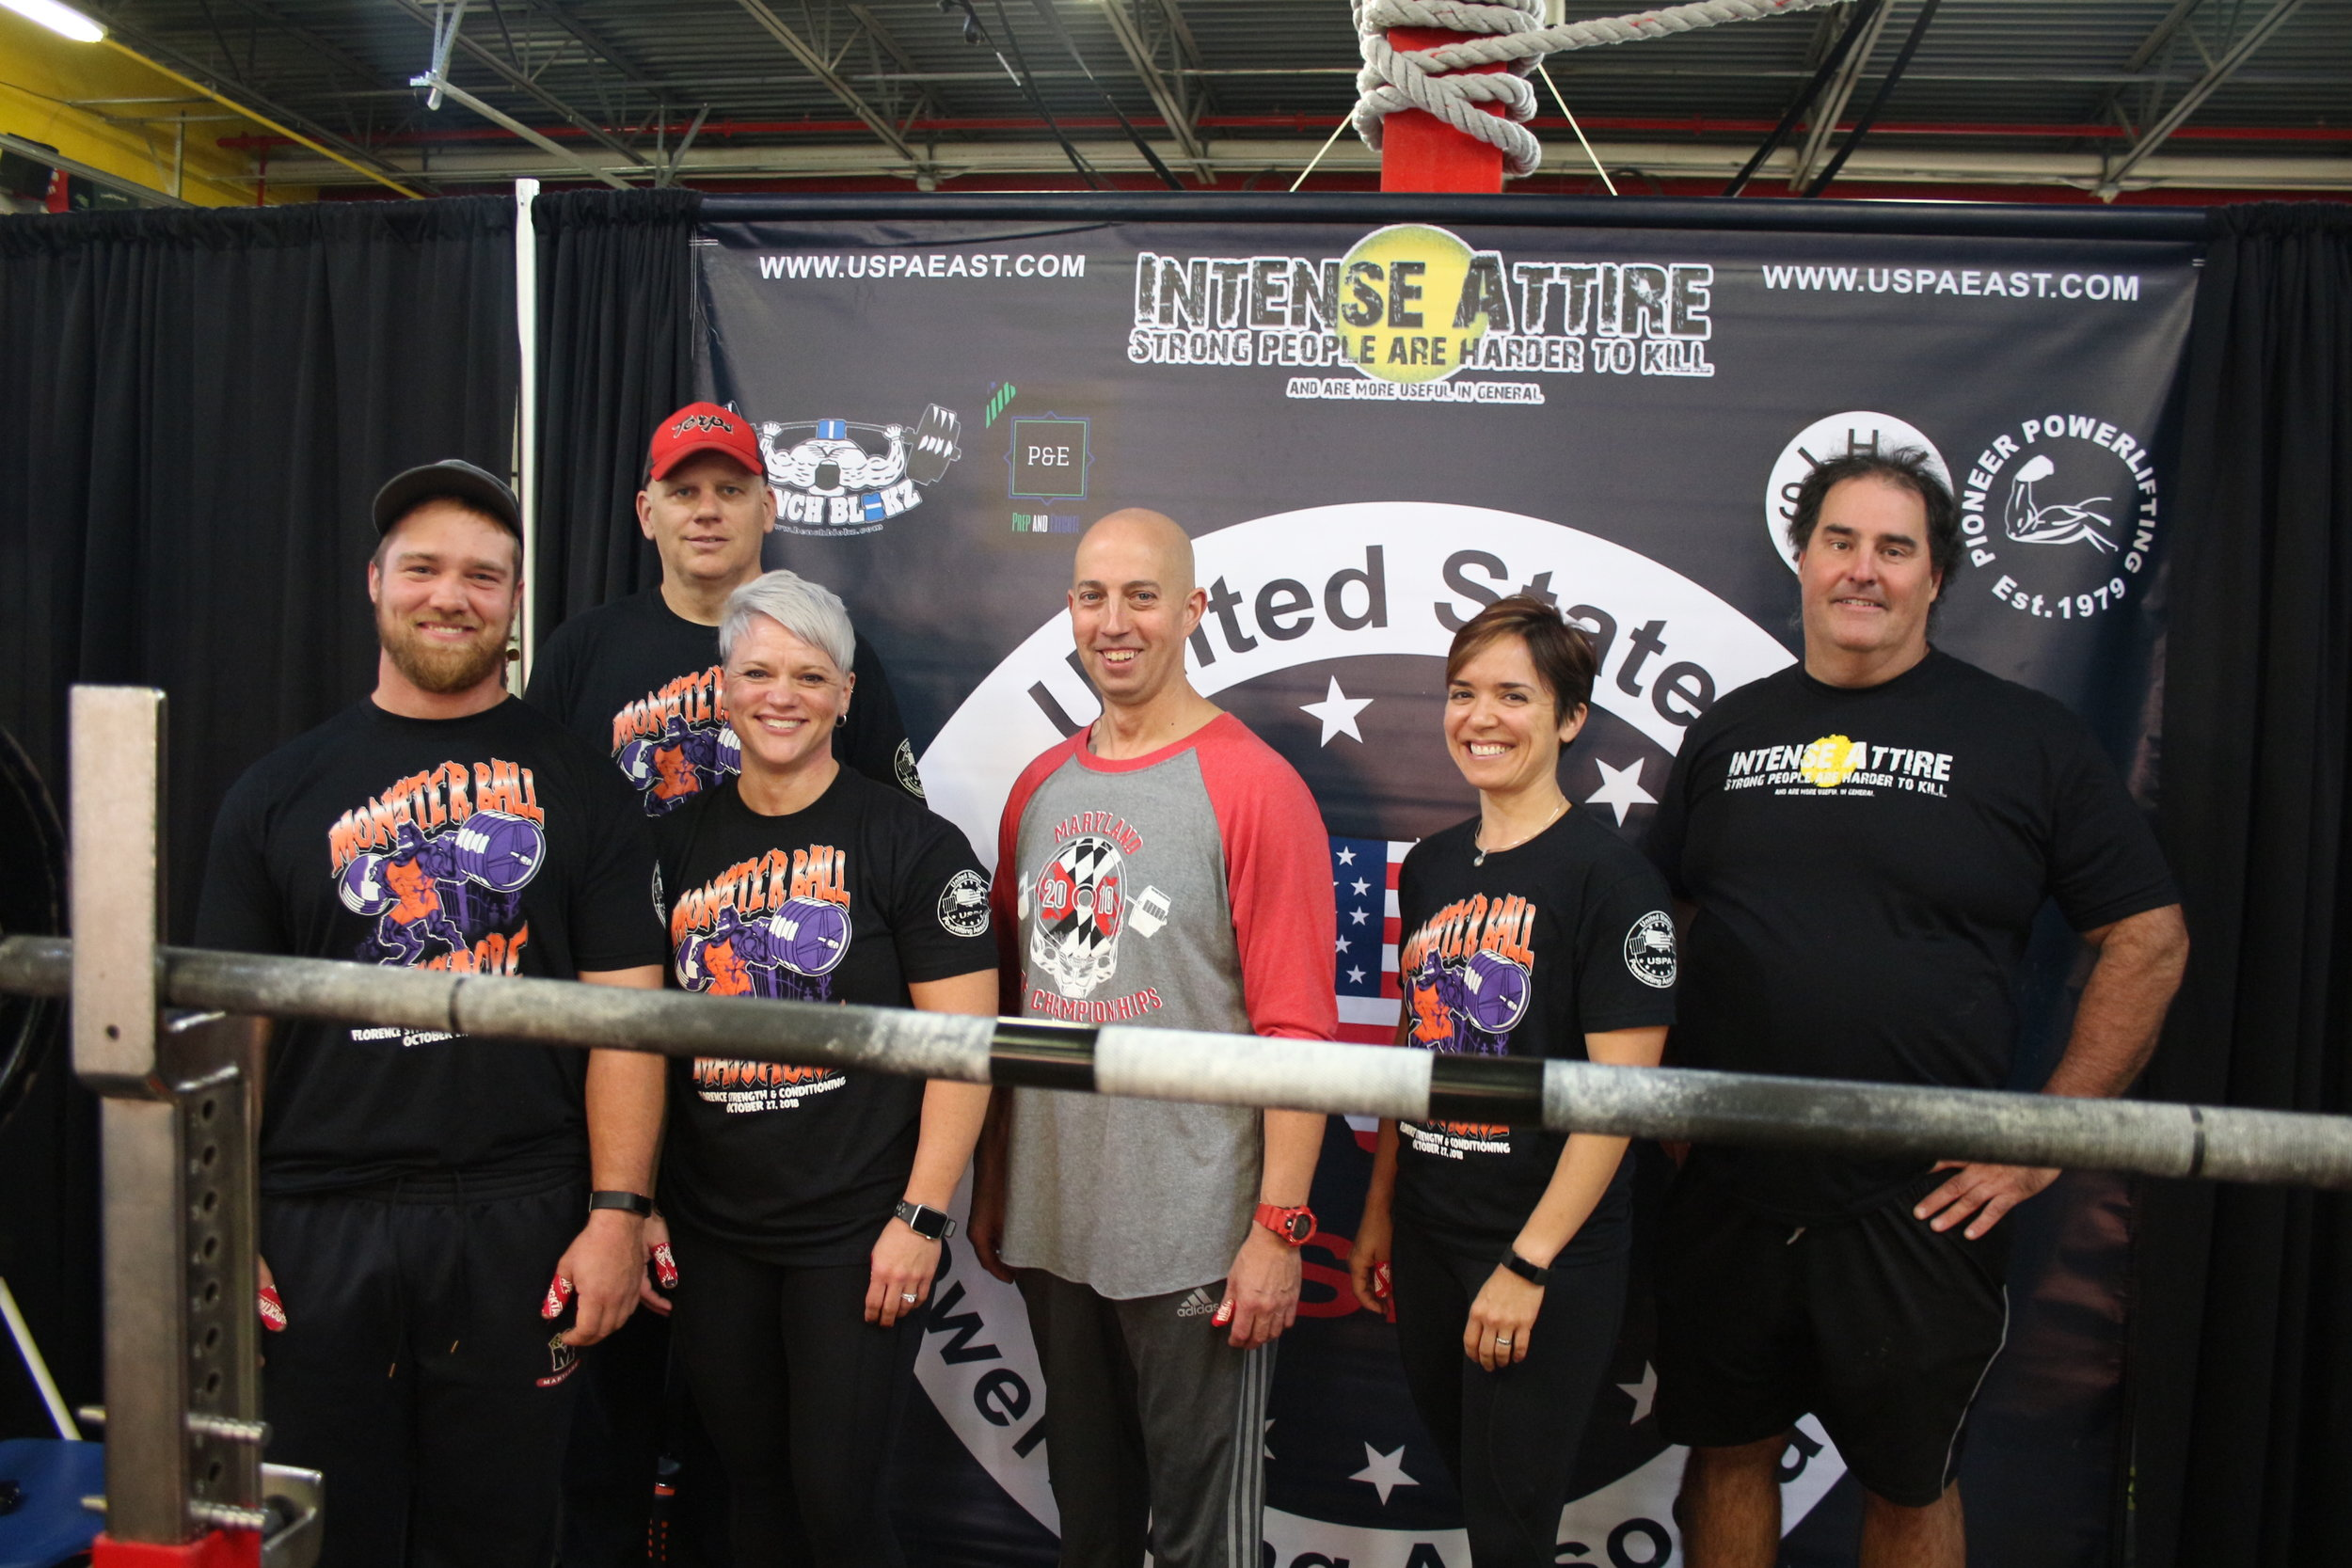 Thanks to our loaders/spotters during the USPA East, Maryland State Championships. We hope the Athlete's know how special you are in the success of their safety!!! We need volunteers for our next meet scheduled on March 9th, 2019 from 8am until 6pm. Details on the positions available can be found  HERE.